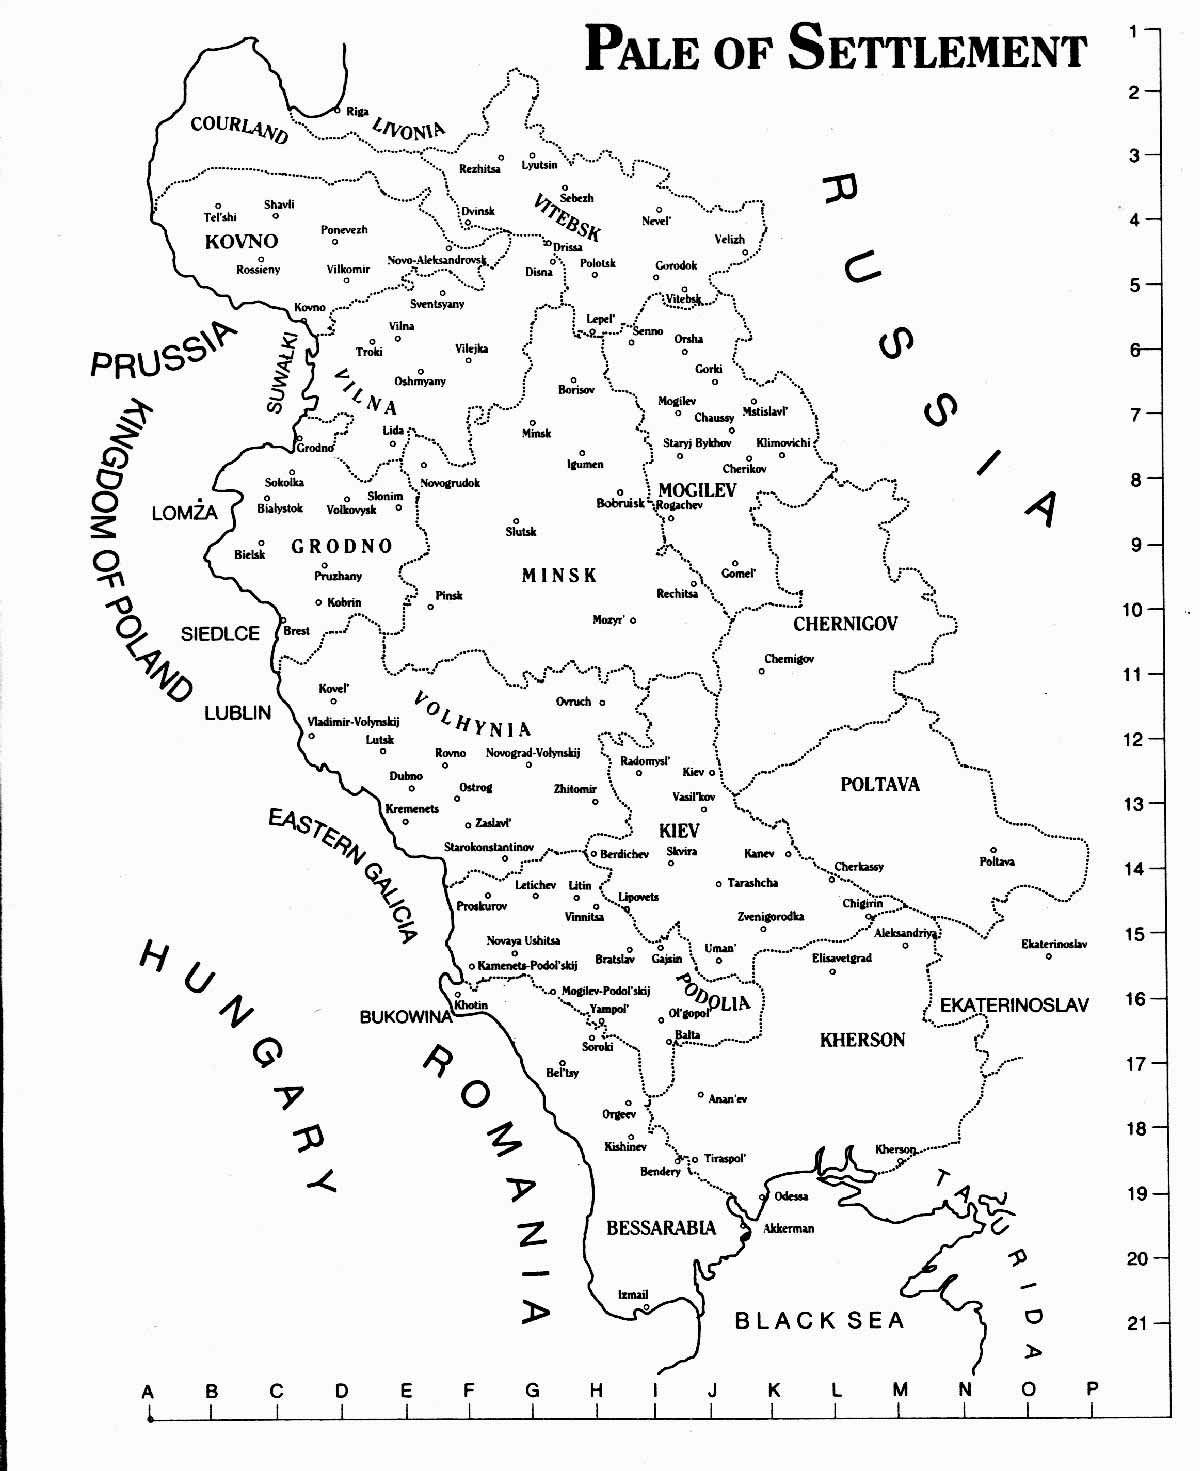 Map of Pale of Settlement